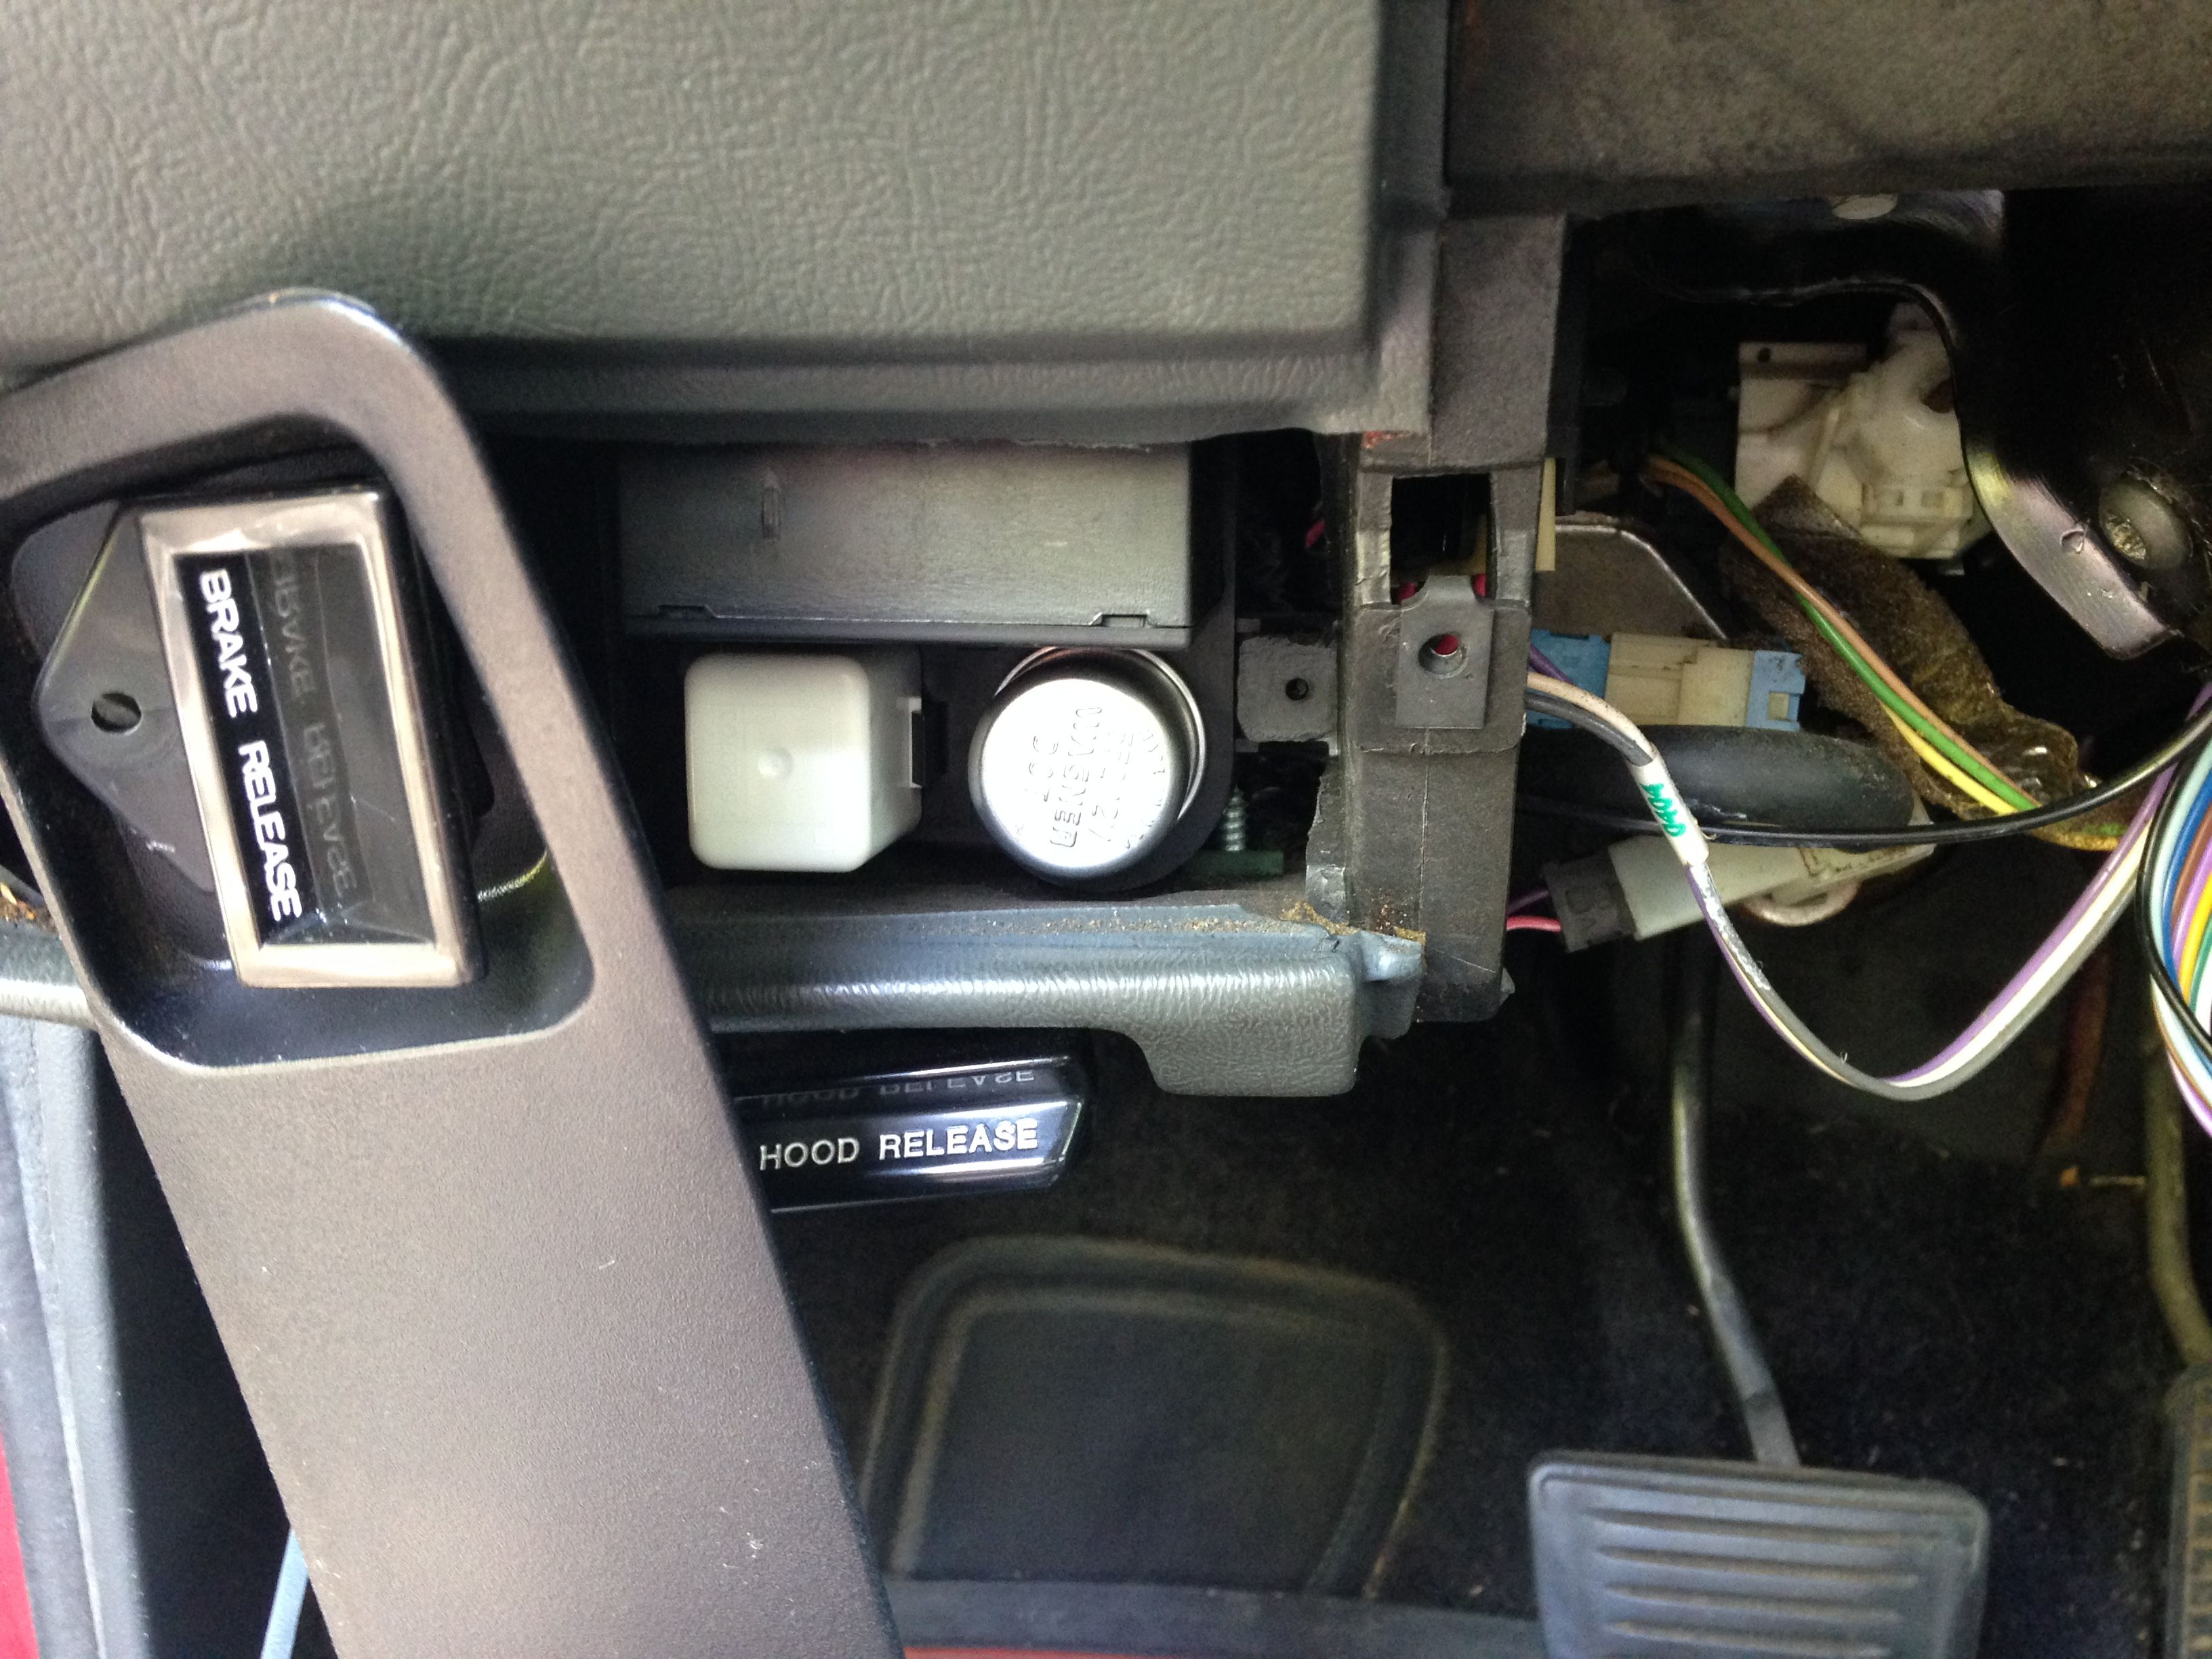 1992 Chevy S10 Blazer horn relay location. | S10 blazer, Chevy s10, Blazer